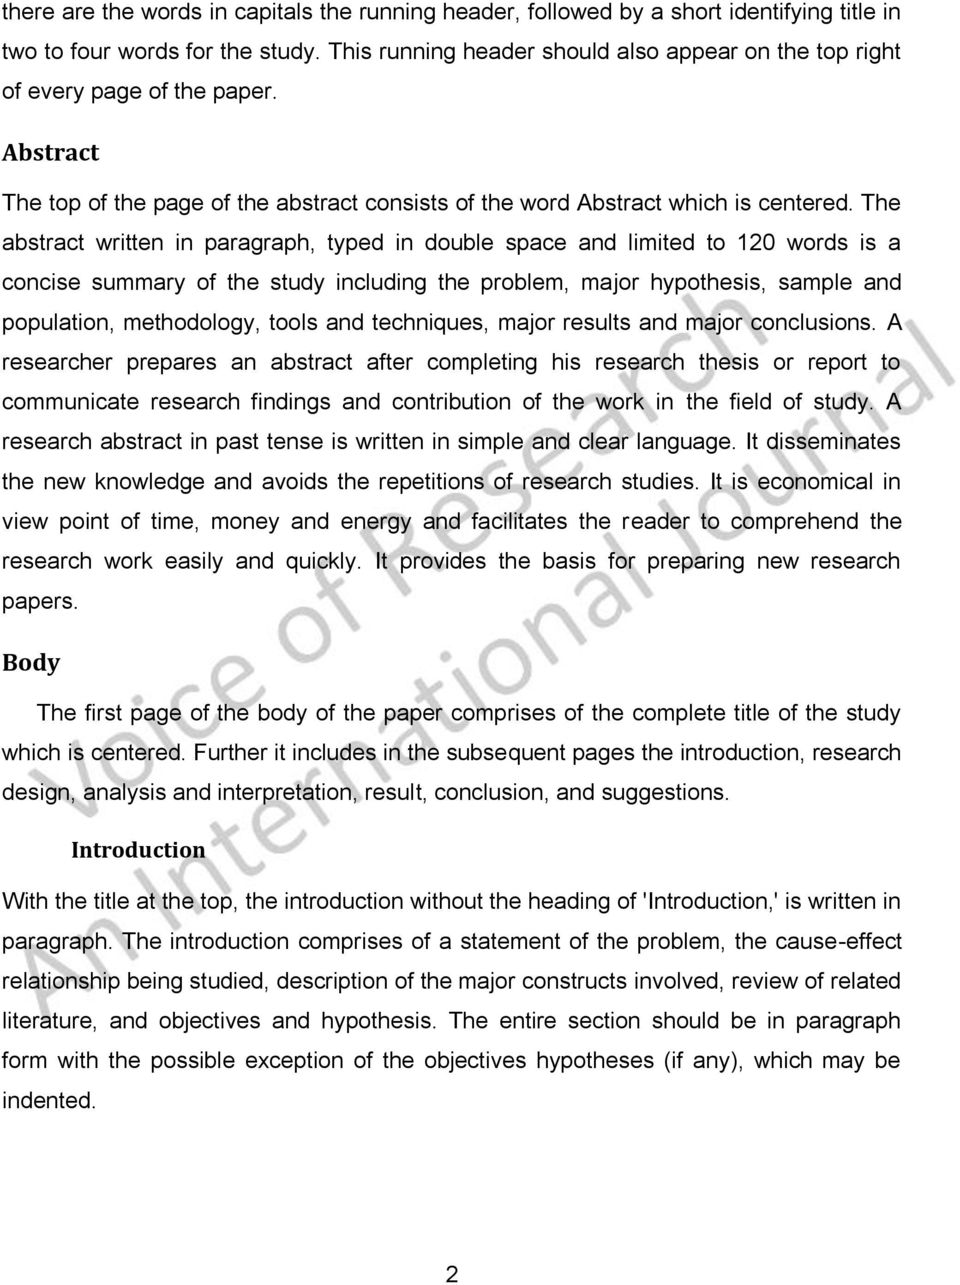 The abstract written in paragraph, typed in double space and limited to 120 words is a concise summary of the study including the problem, major hypothesis, sample and population, methodology, tools